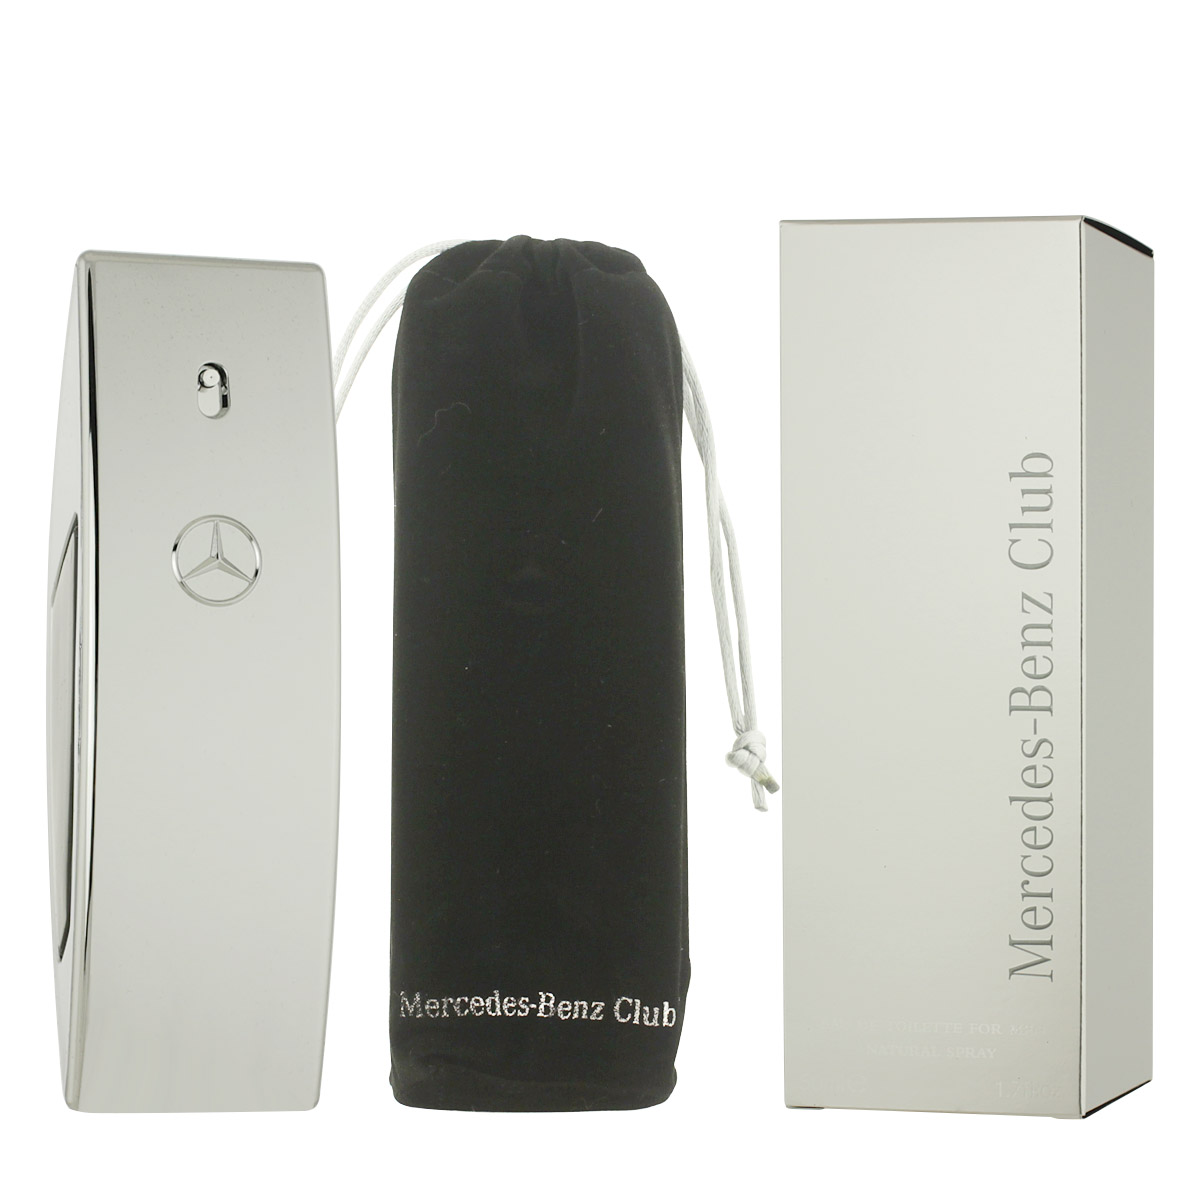 Mercedes-Benz Mercedes-Benz Club Eau De Toilette 50 ml (man) 75279